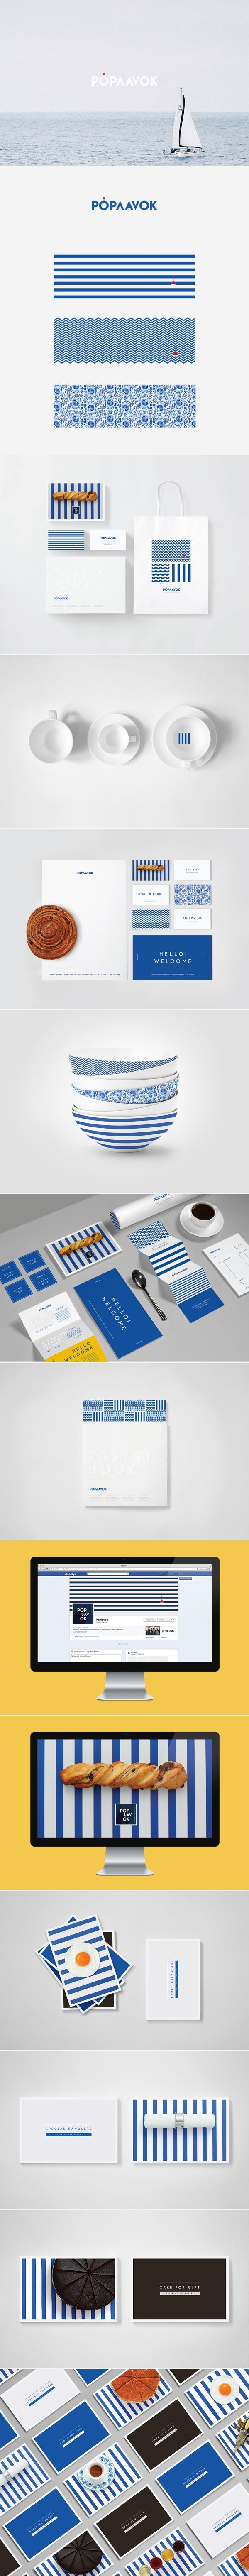 Poplavok (Russian restaurant on the water) | Ira Sm. Beautiful blue #identity  | #stationary #corporate #design #corporatedesign #identity #branding #marketing < repinned by www.BlickeDeeler.de | Take a look at www.LogoGestaltung-Hamburg.de